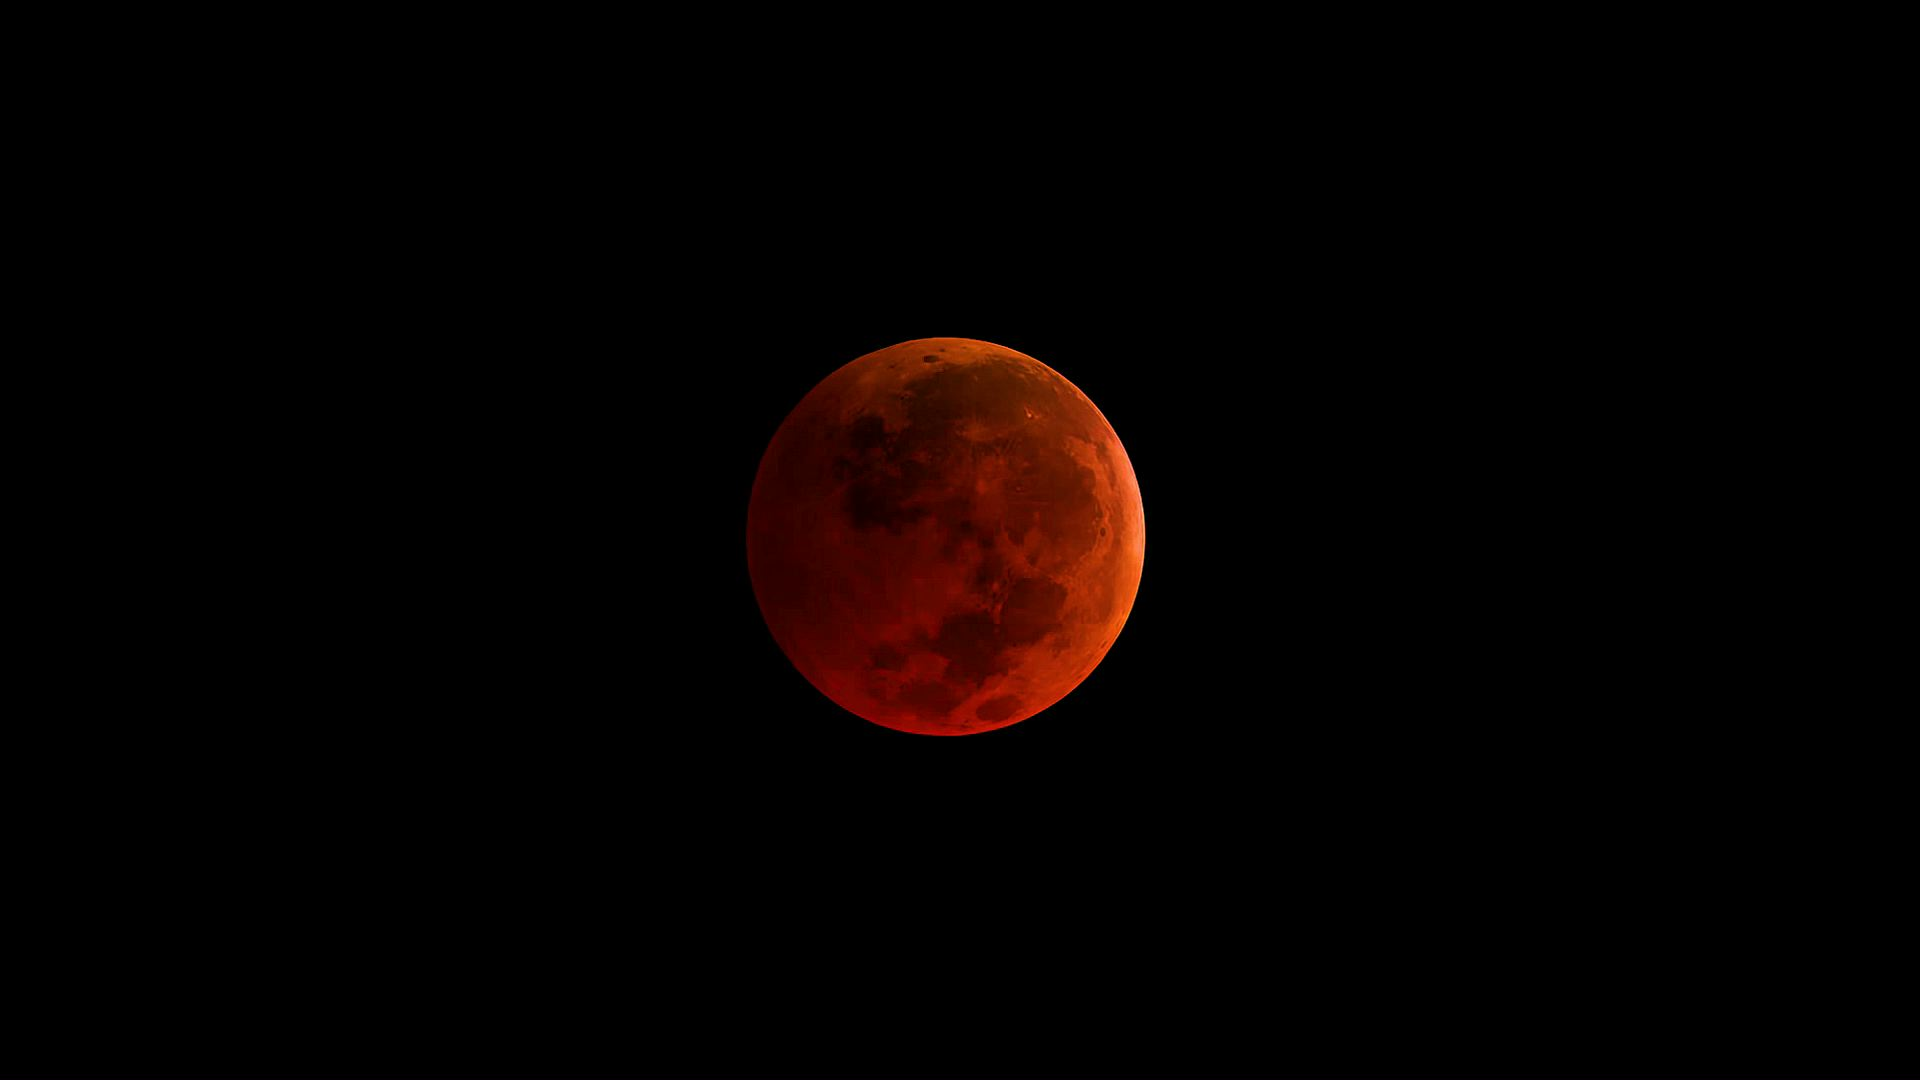 A total Lunar Eclipse will occur on January 31